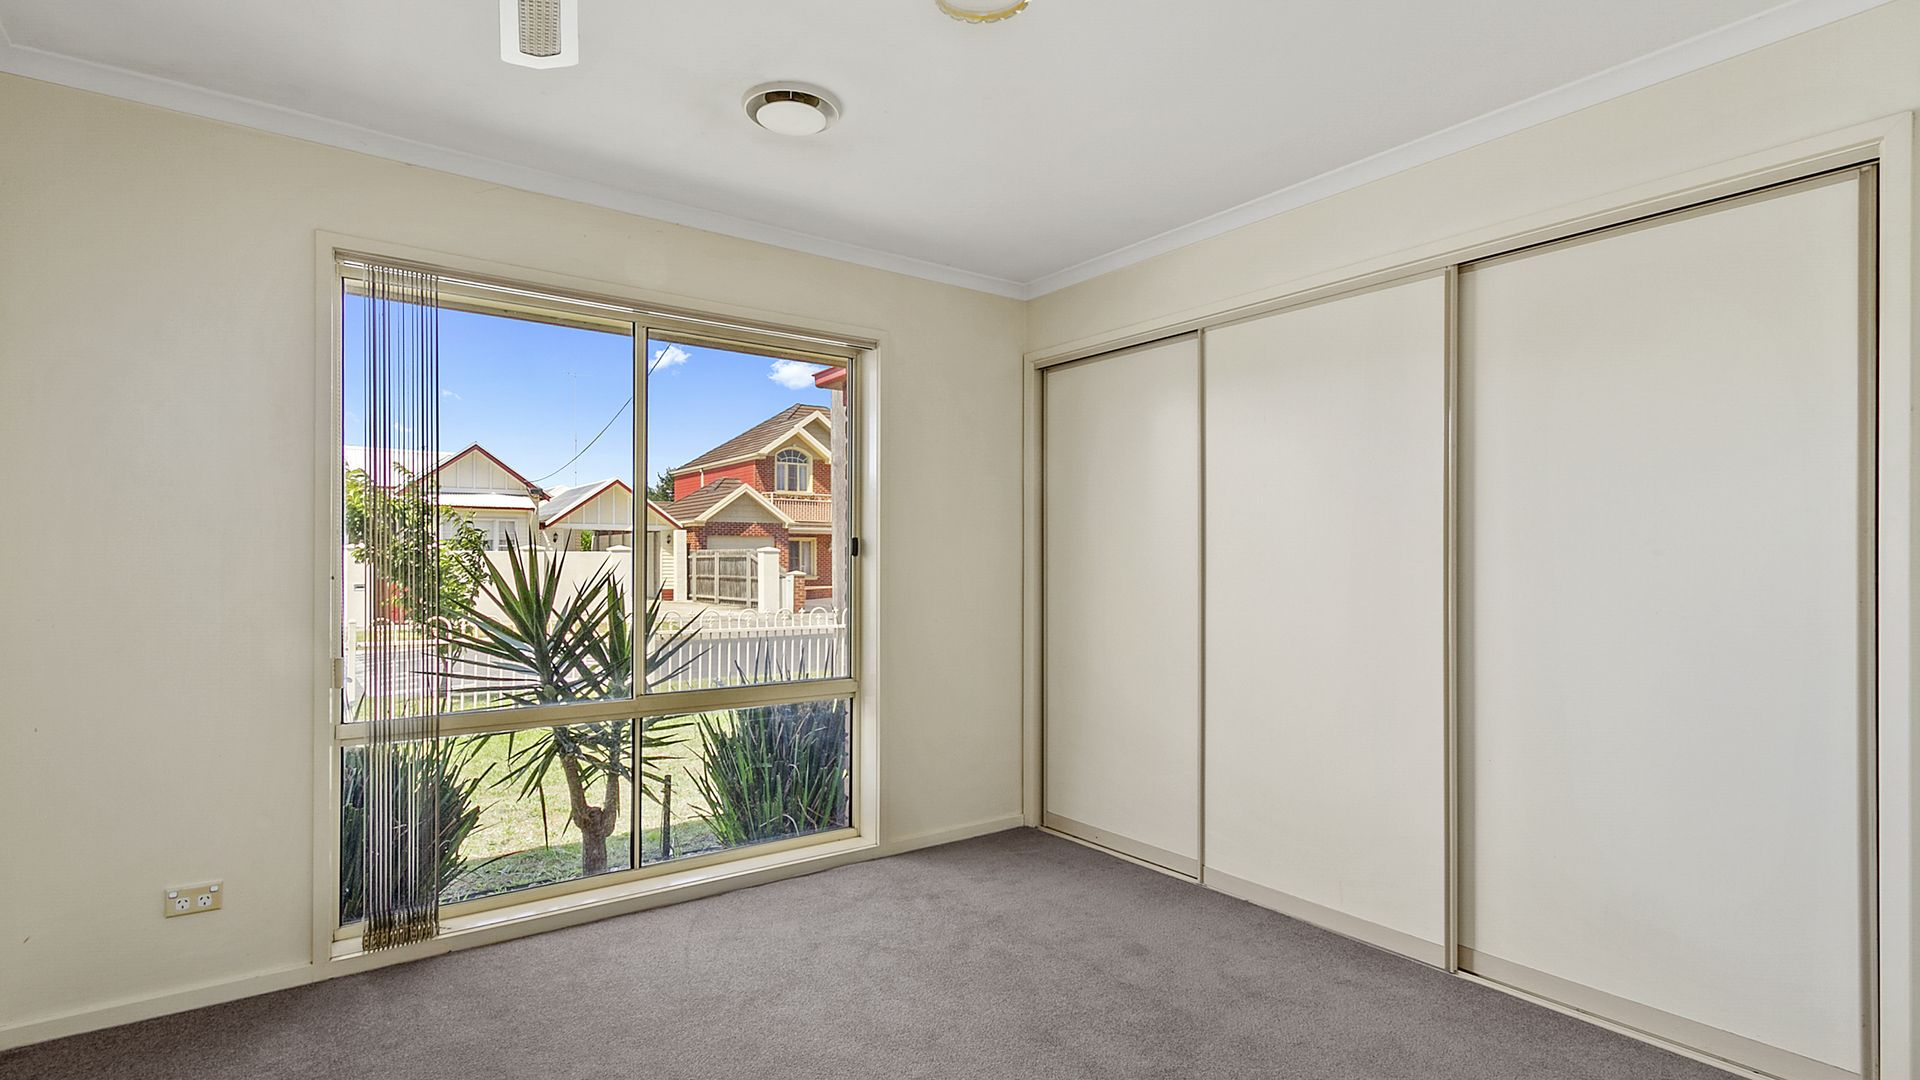 1/26 Moore St, Traralgon VIC 3844, Image 2